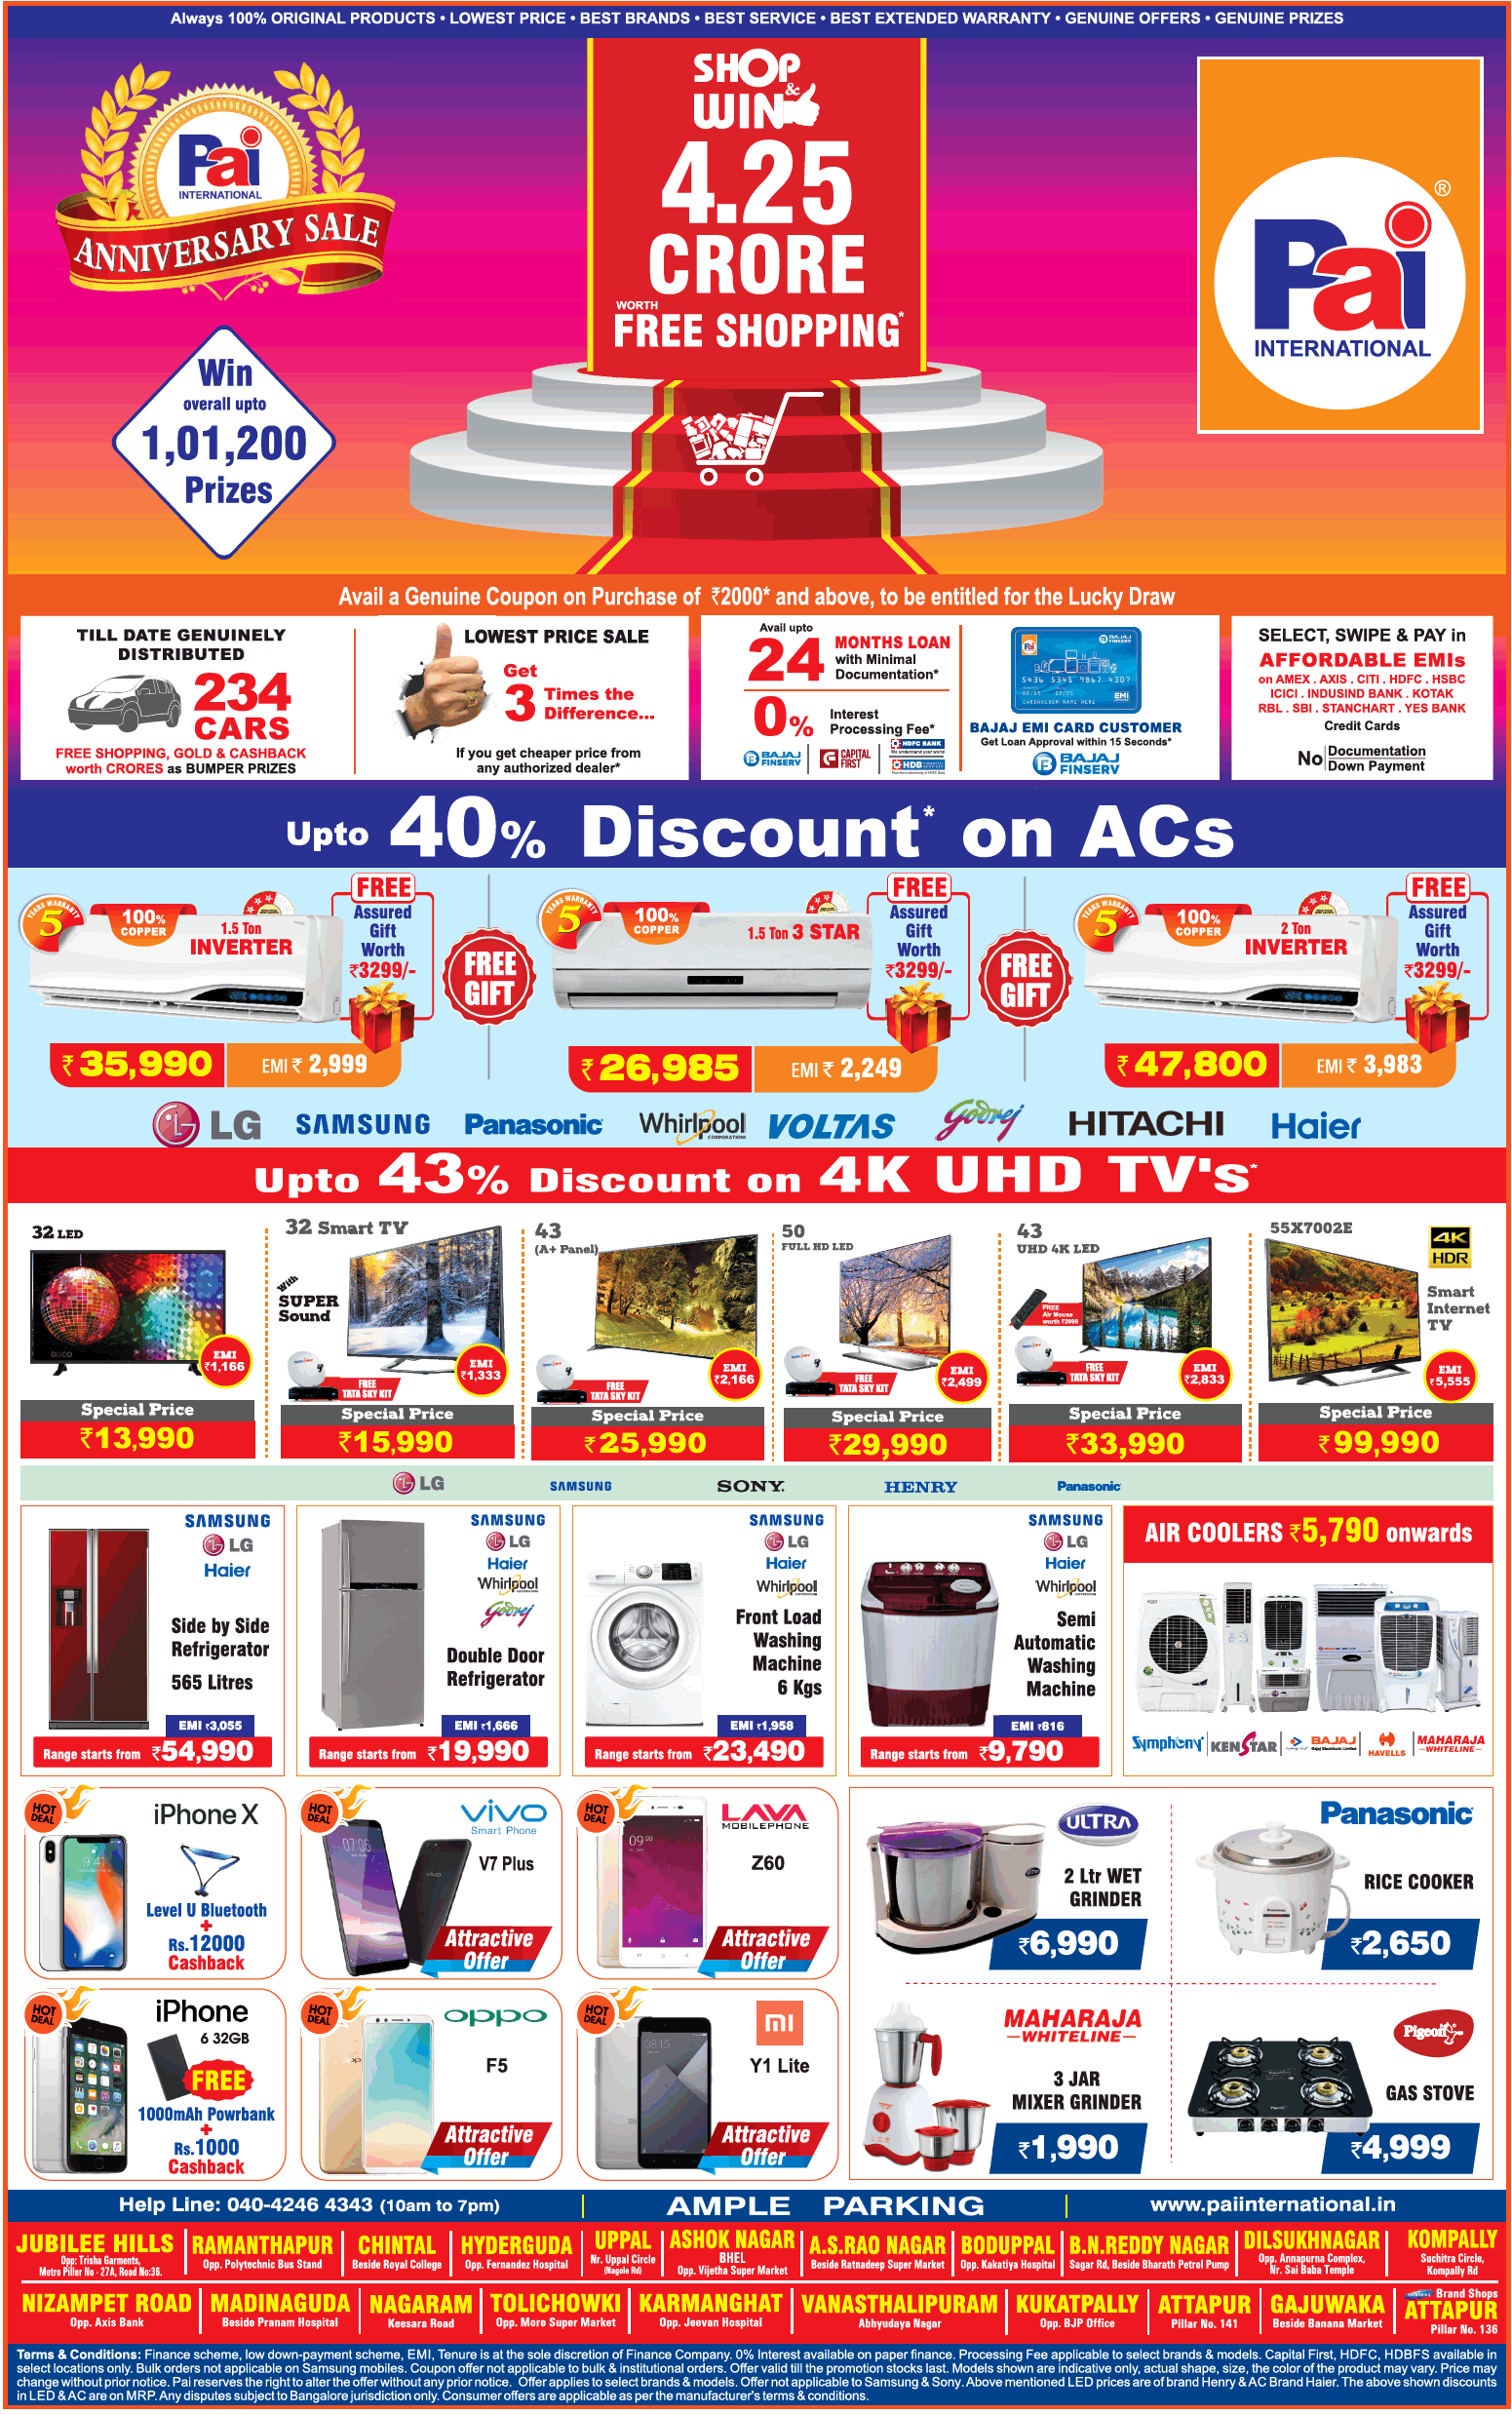 Pai International Anniversary Sale Shop Win 4 25 Crore Free Shopping Ad